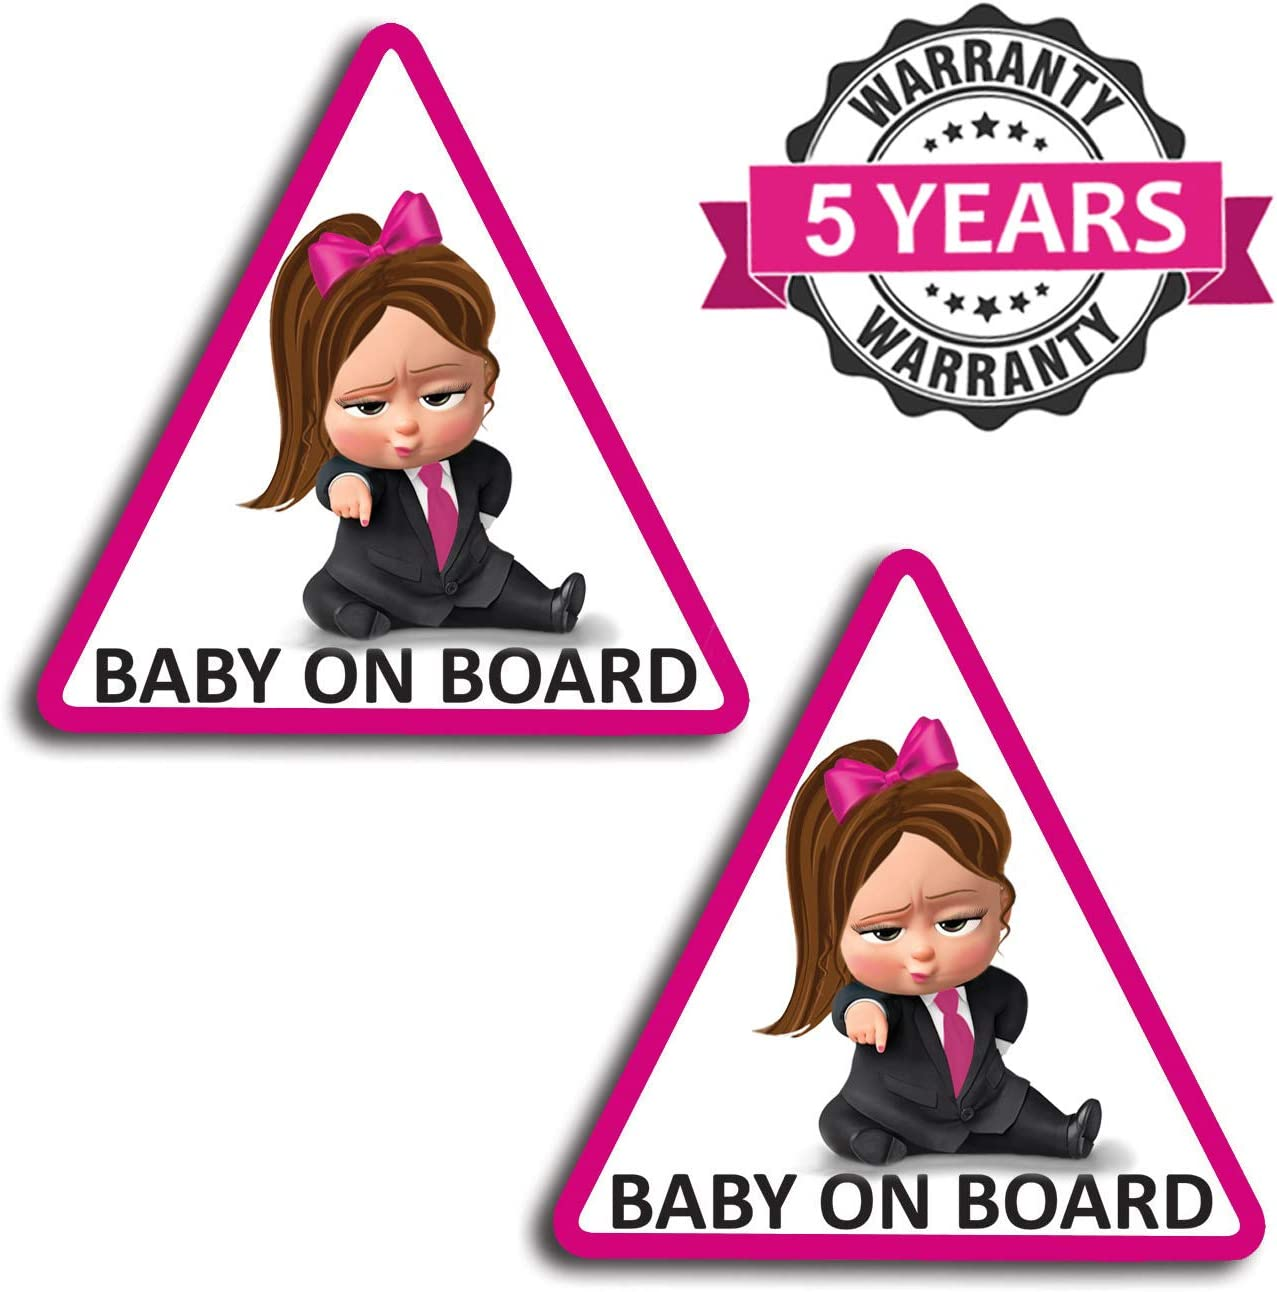 2 x Vinyl Self-Adhesive Funny Stickers Baby on Board Girl Boss Decal Car Window Auto B 166